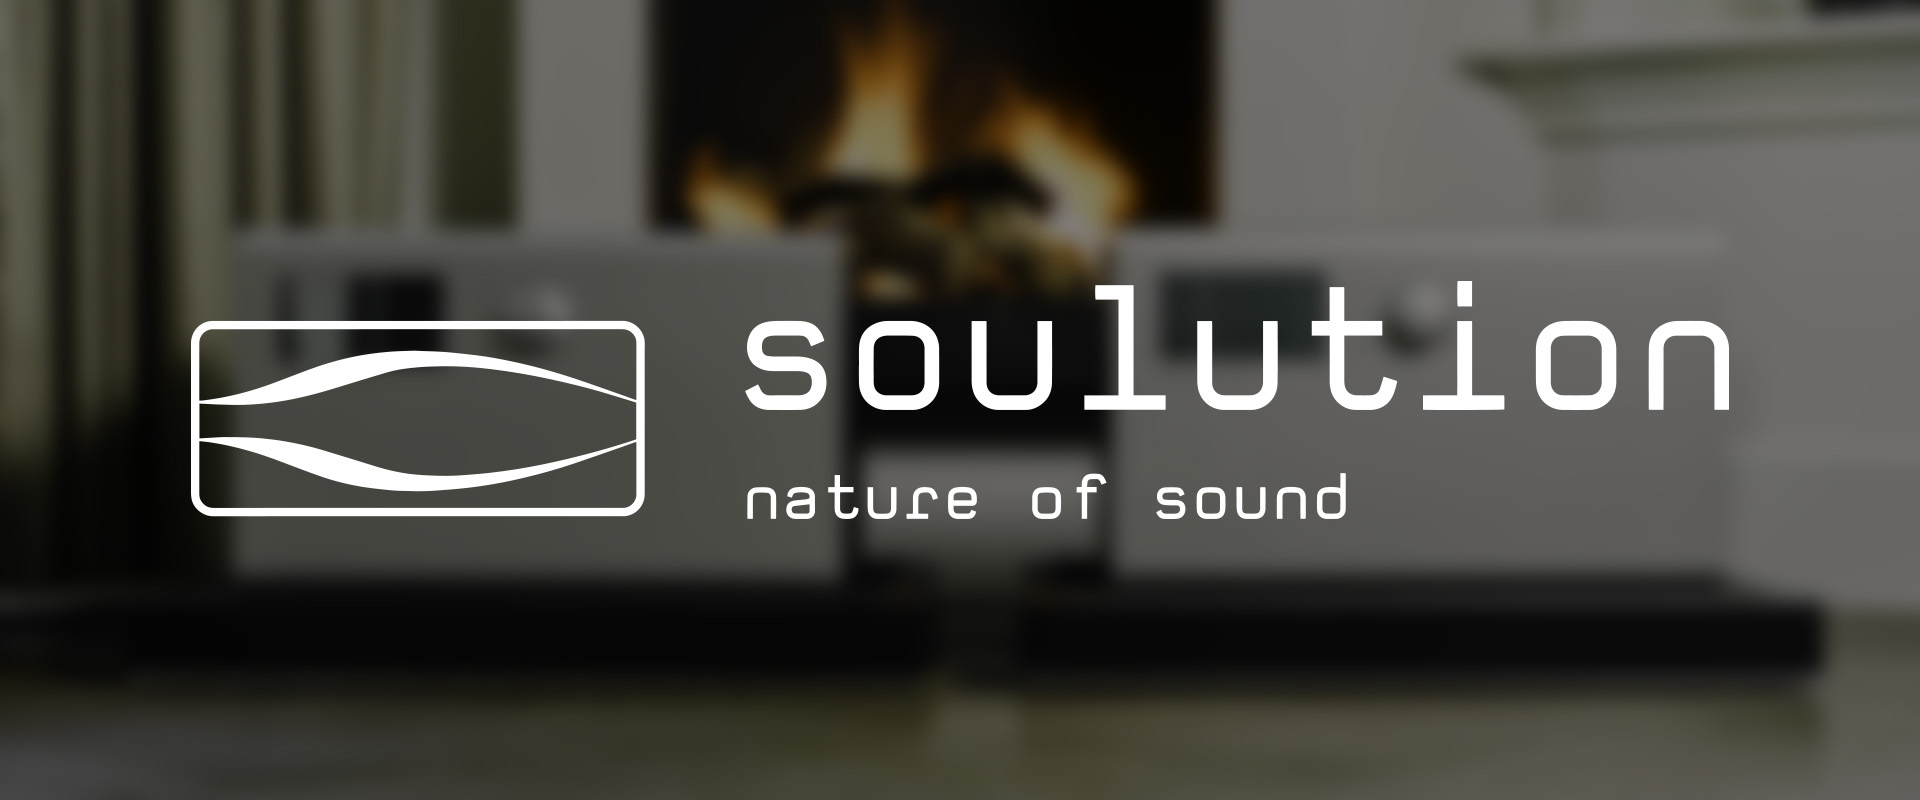 Soulution - Chattelin Audio Systems